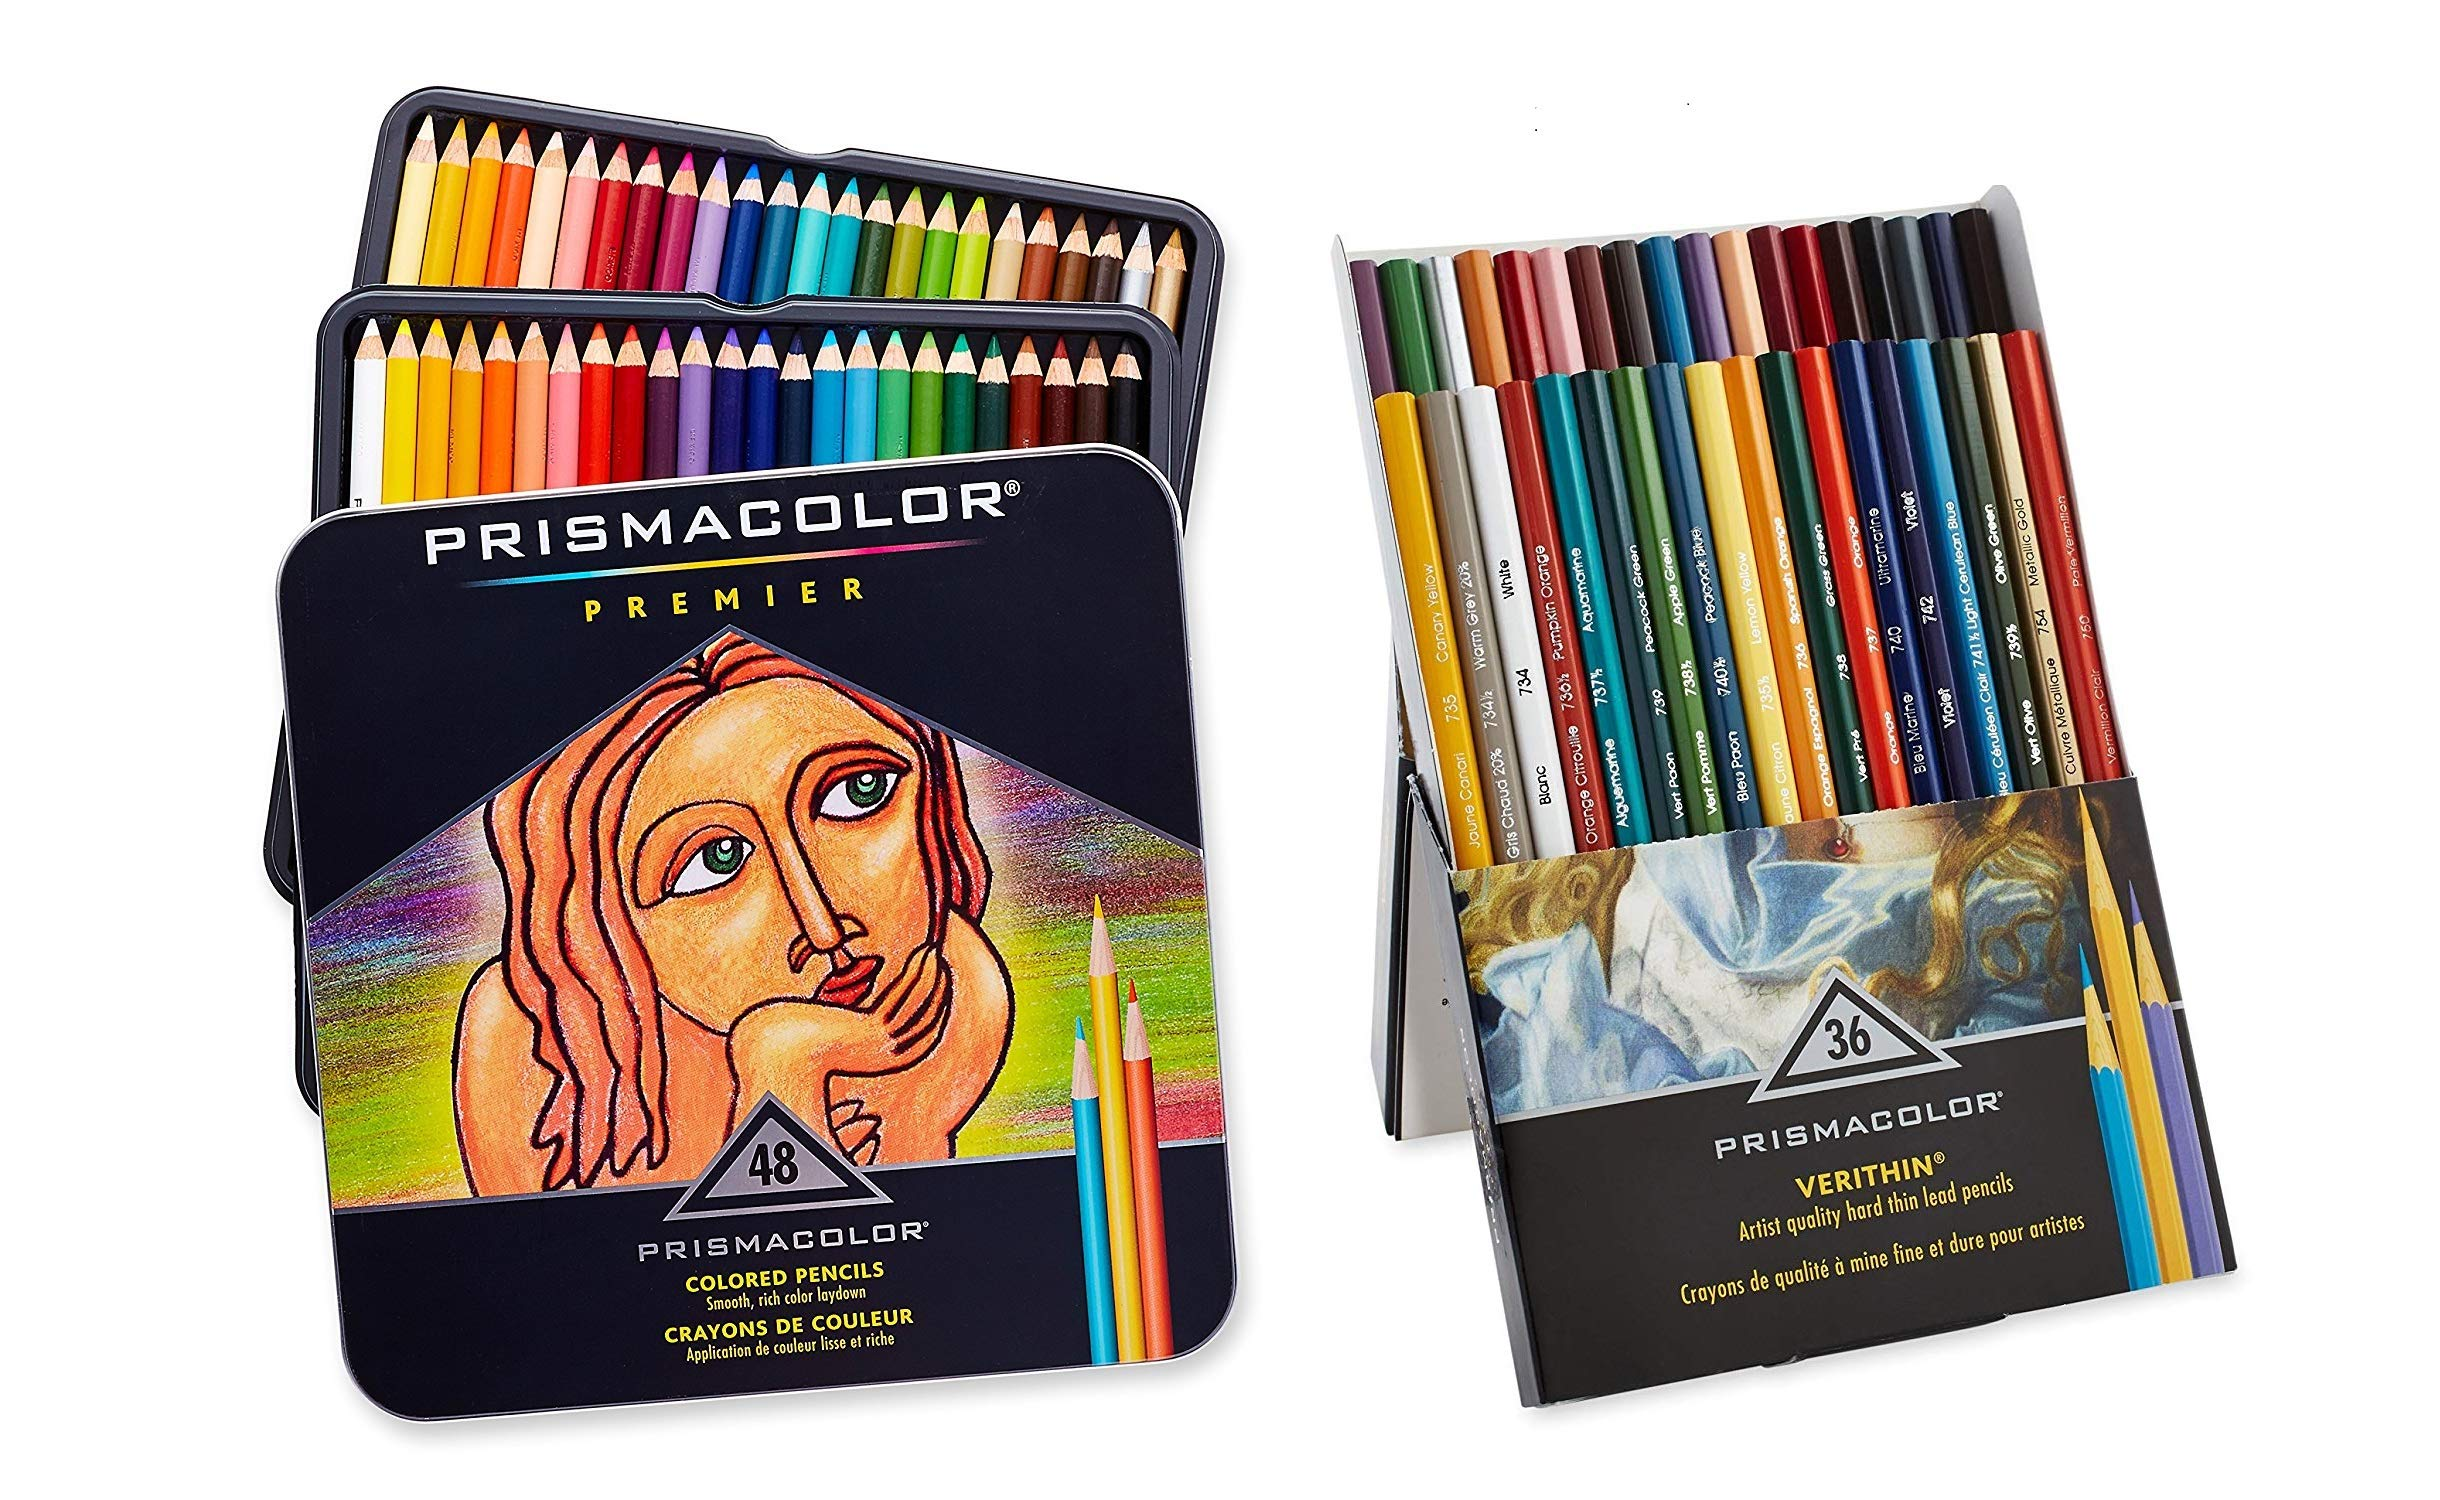 Prismacolor Premier Soft Core Colored Pencils, Set of 48 Assorted Colors (3598T) + Prismacolor Verithin Colored Pencils, Set of 36 Assorted Colors (2428) by Sanford Markers